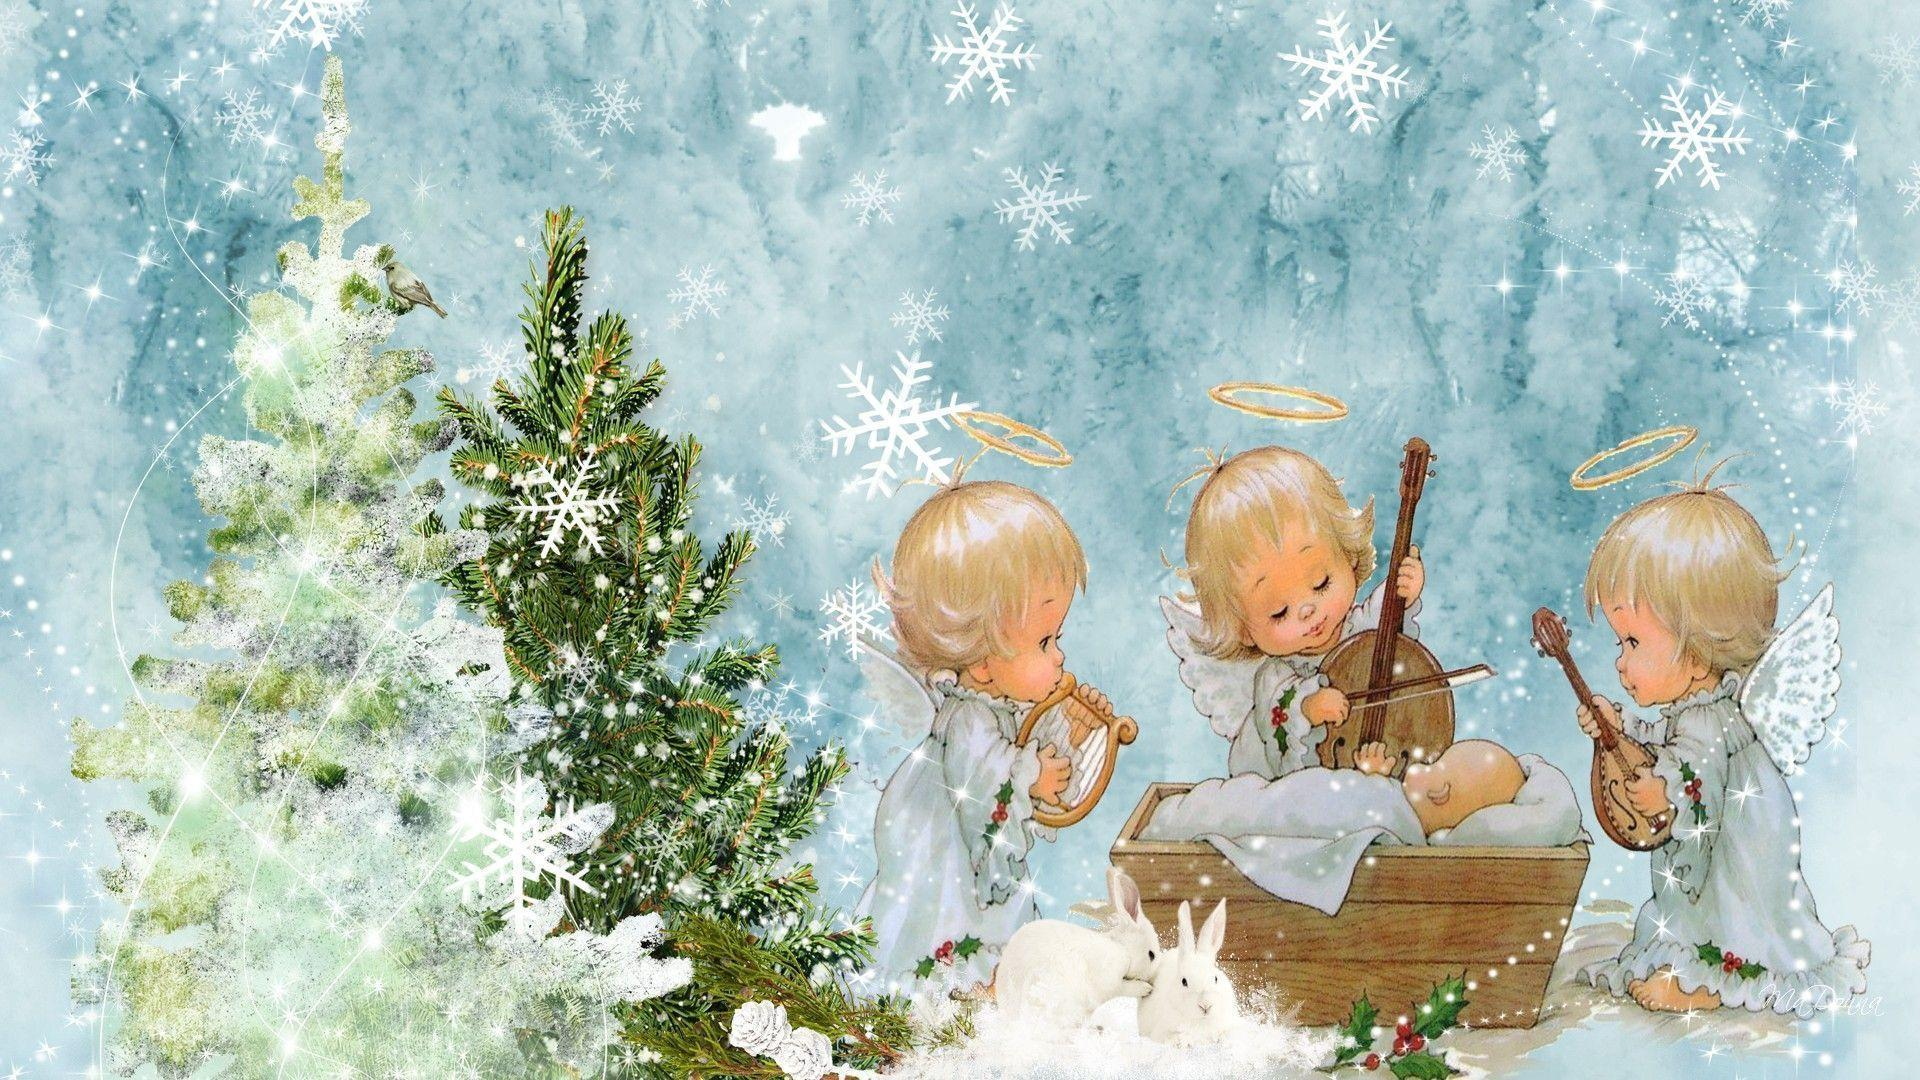 Christmas Angel Wallpapers - Wallpaper Cave